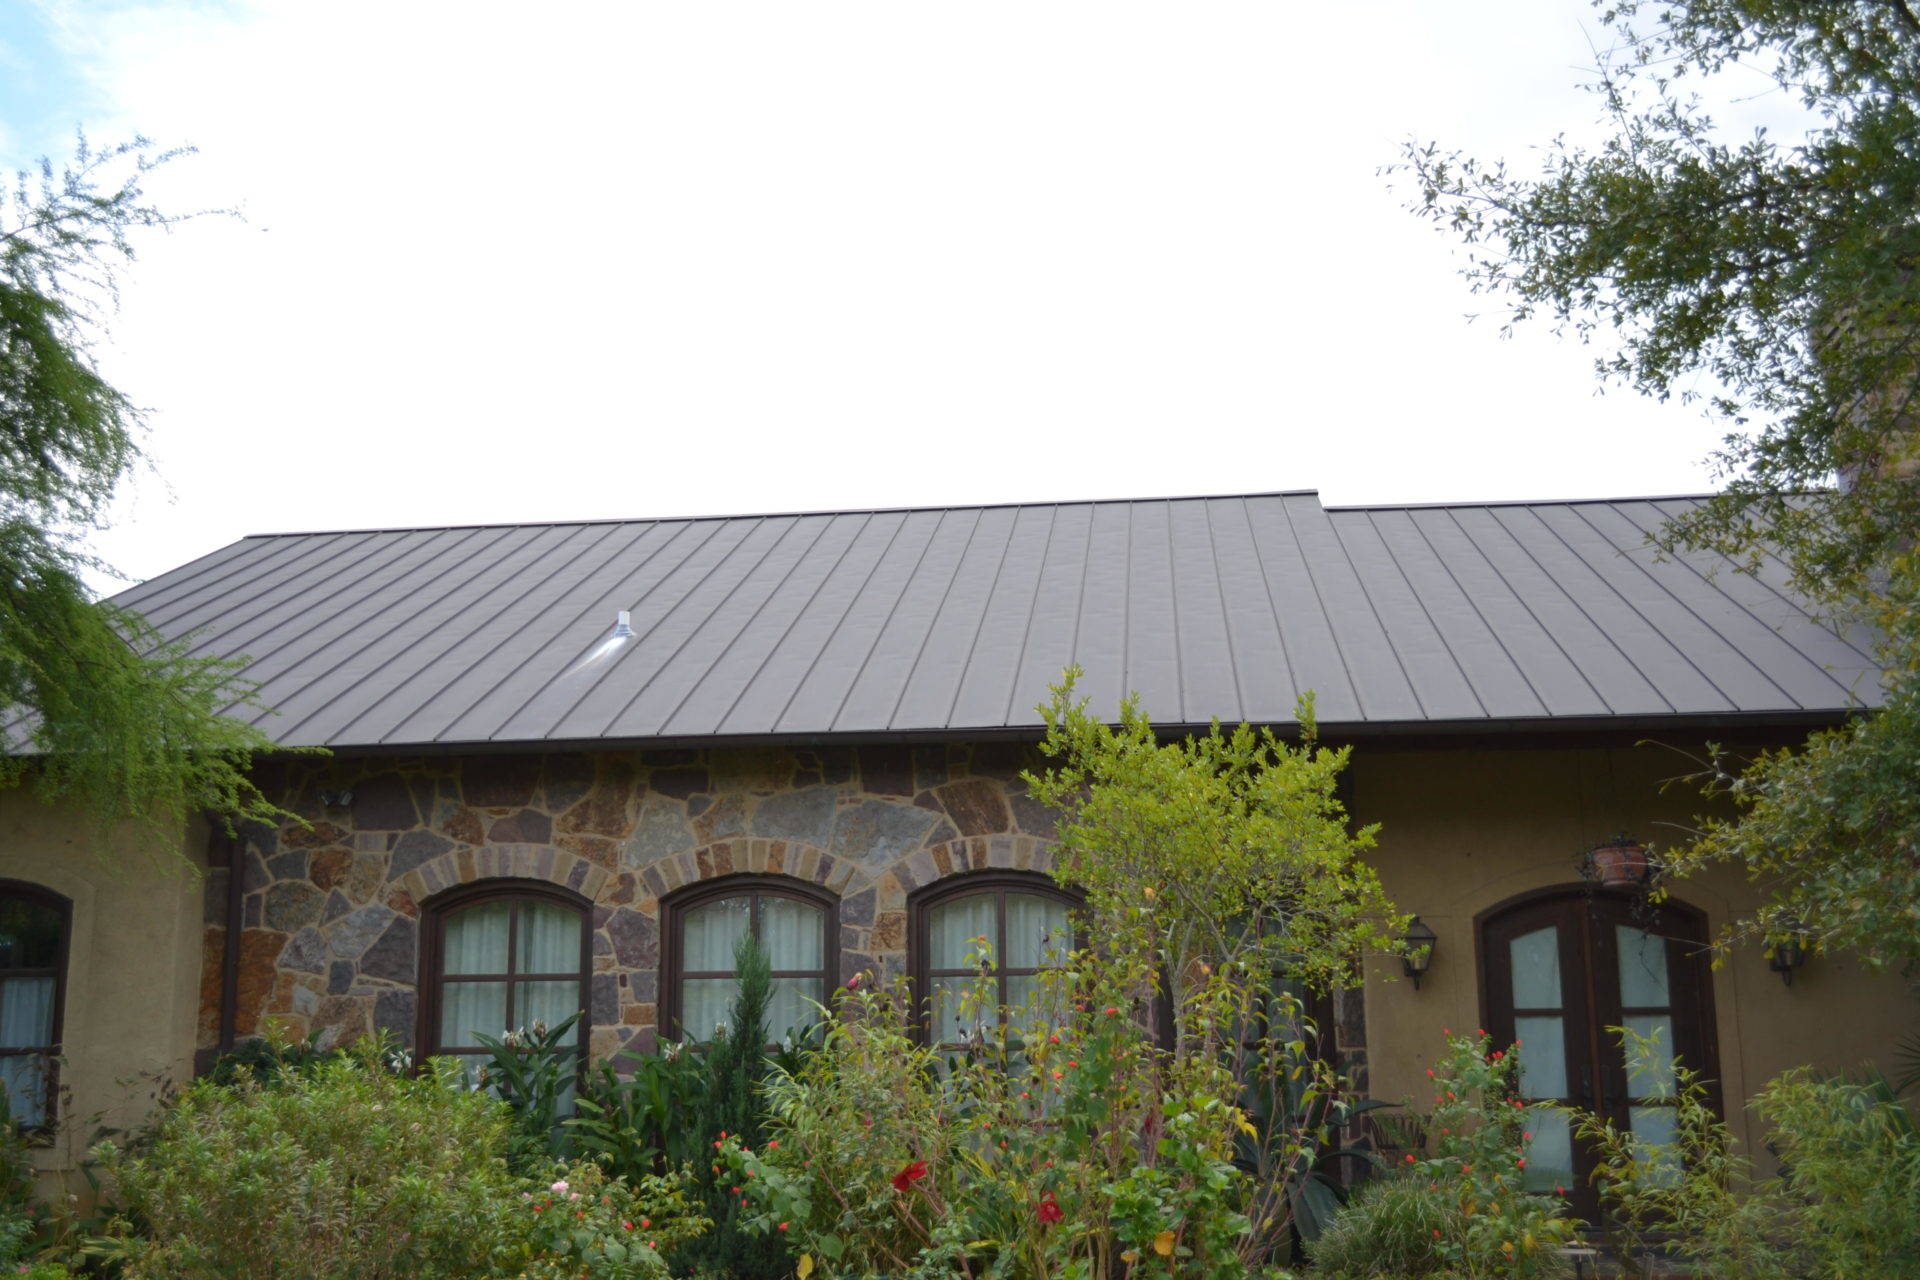 Copper Standing Seam 4 Years Old Brinkmann Quality